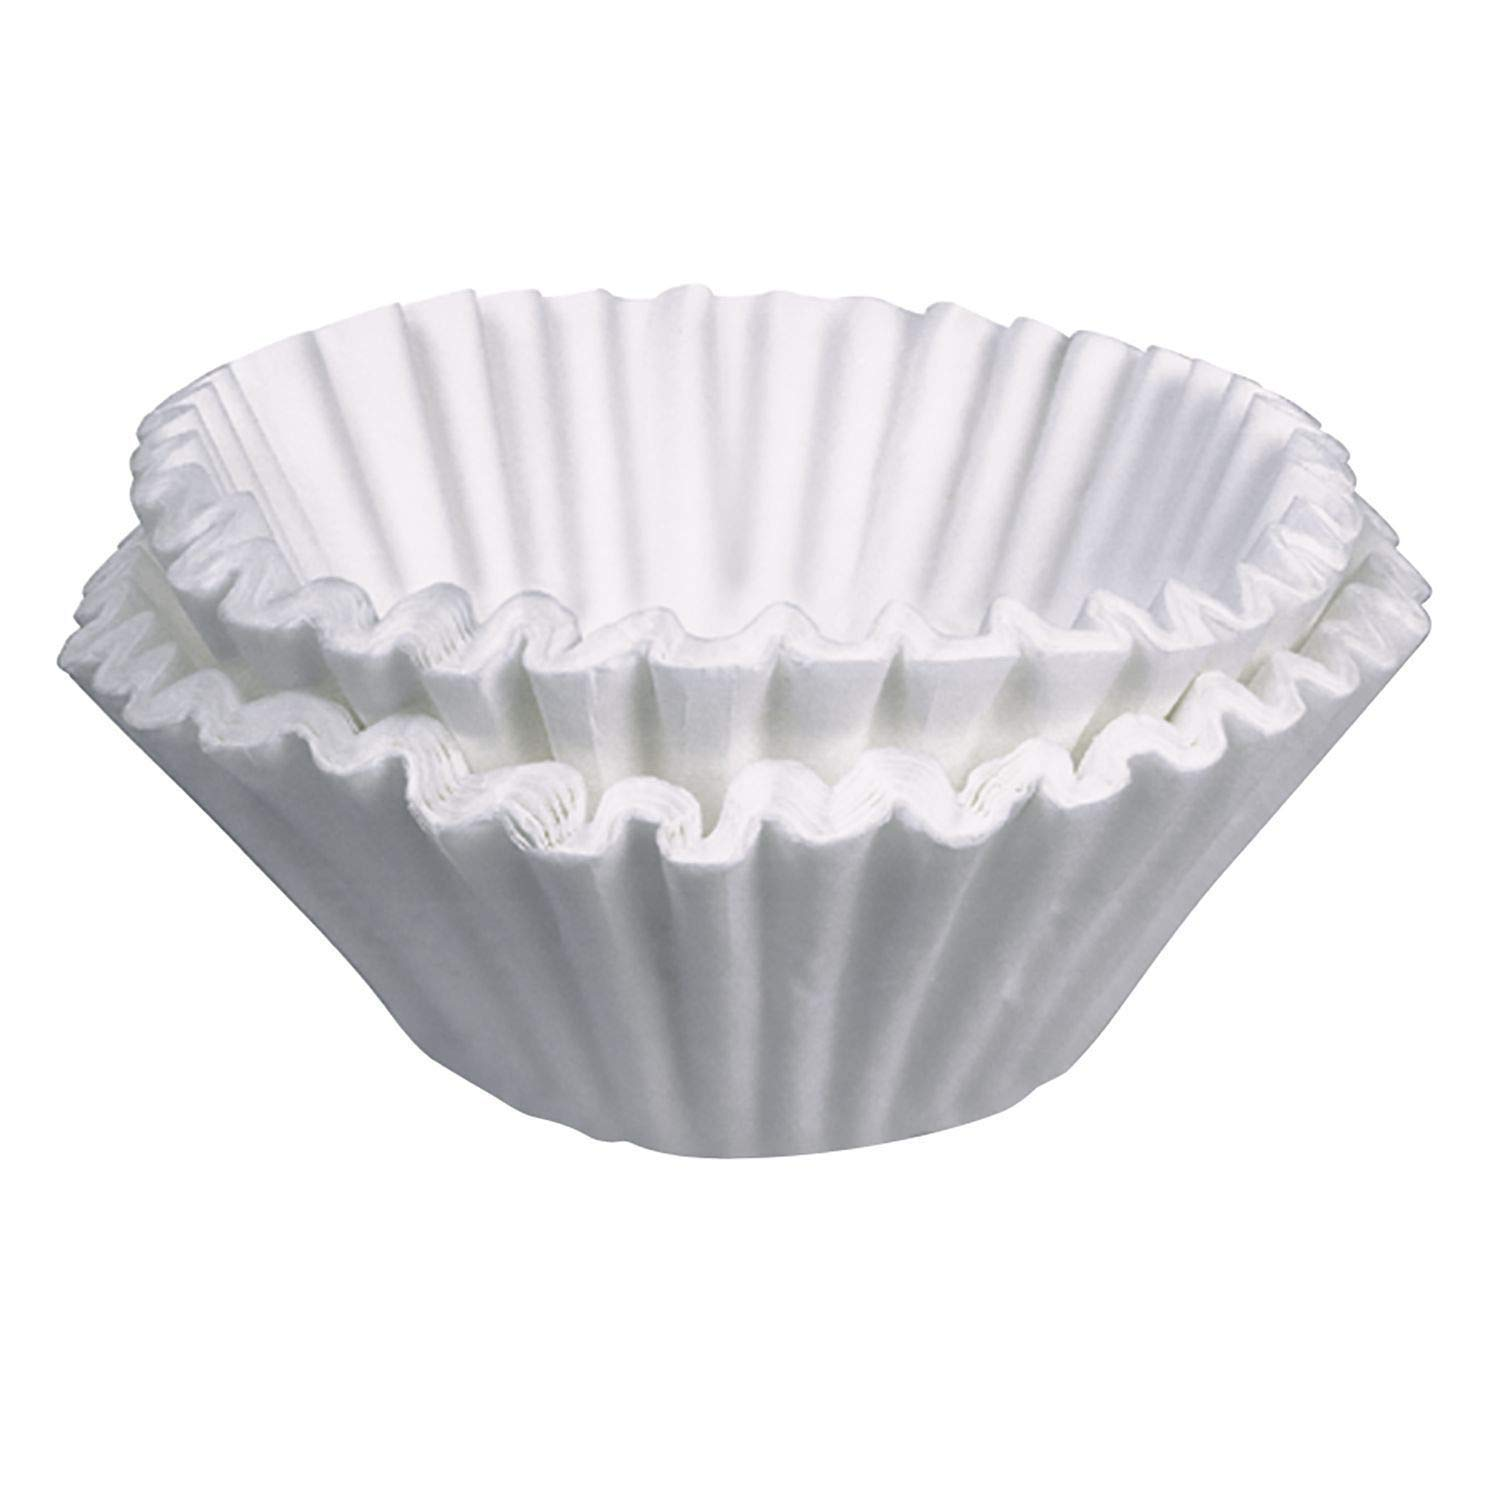 Bunn 20112.0000 18.5 x 6.25 in. Paper Coffee Filters 250 Count